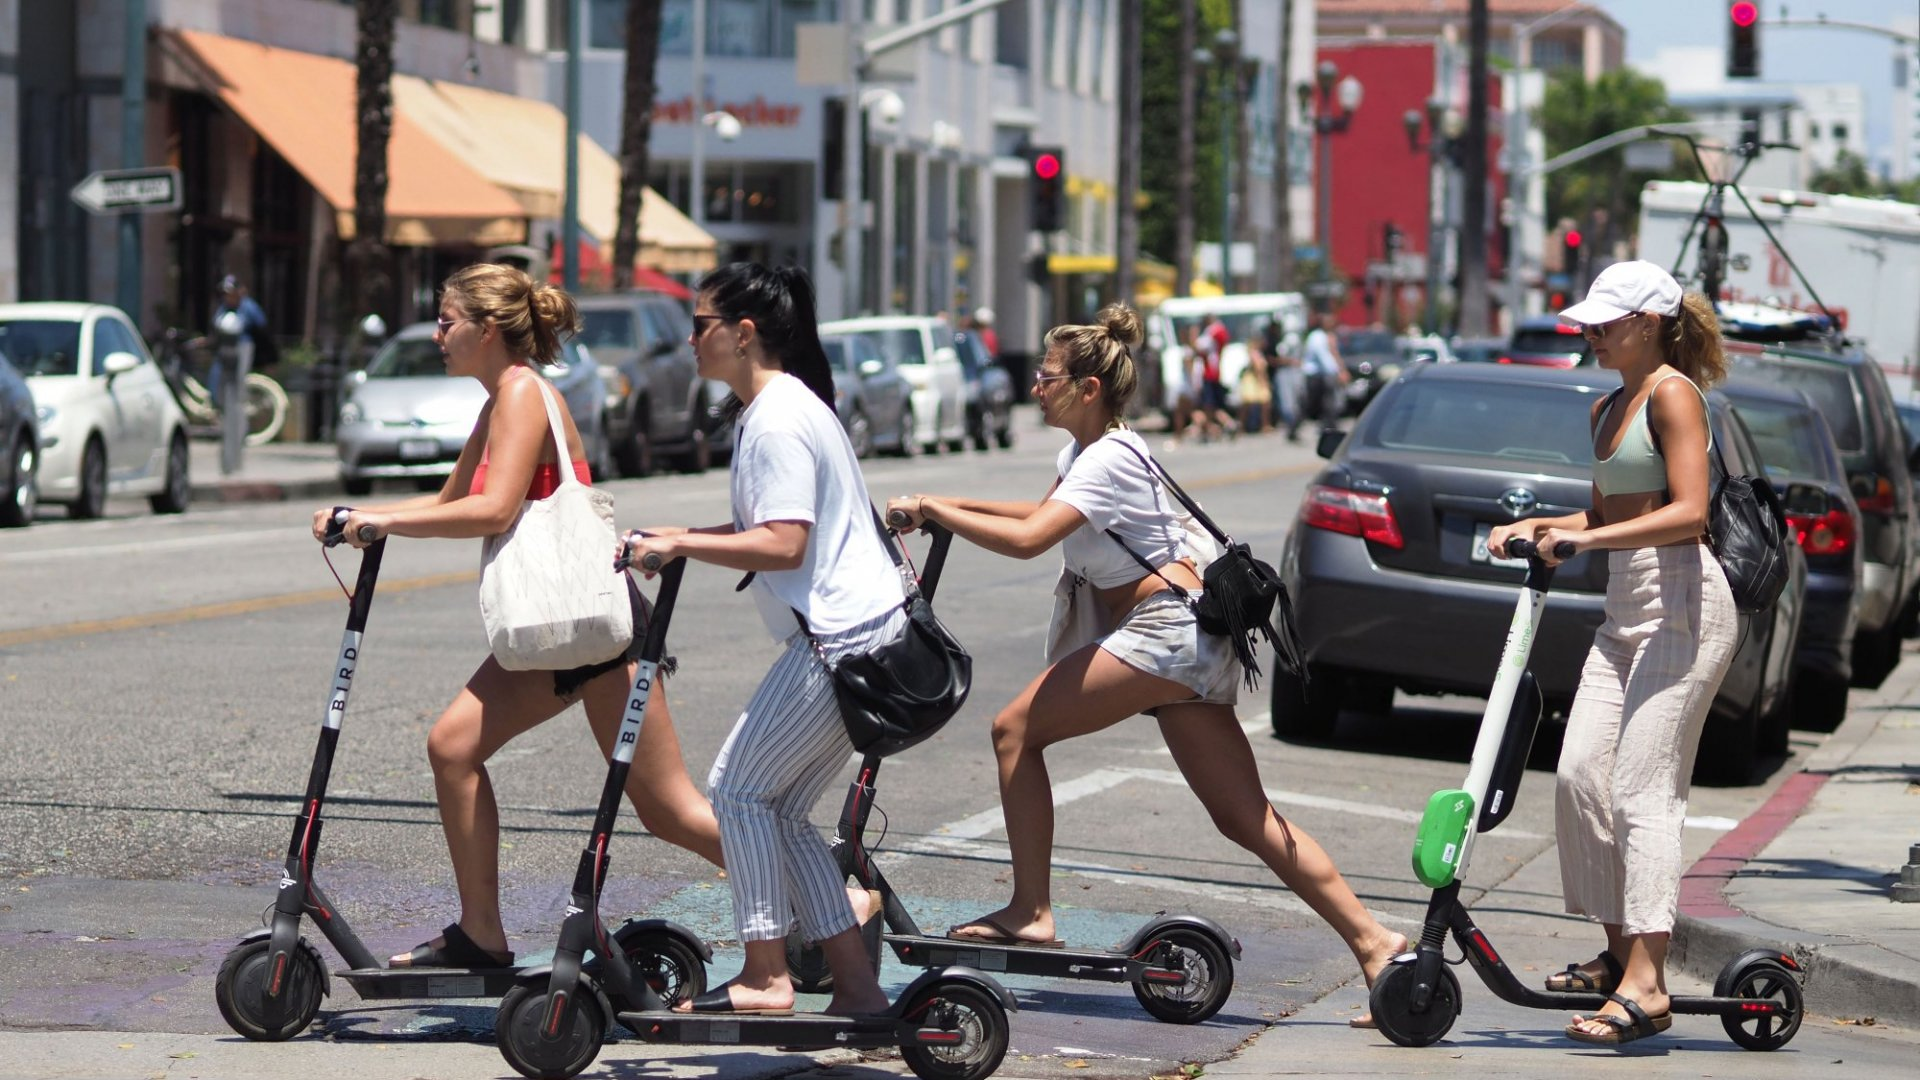 Are Investors in Scooter Platforms Betting on a Fad?